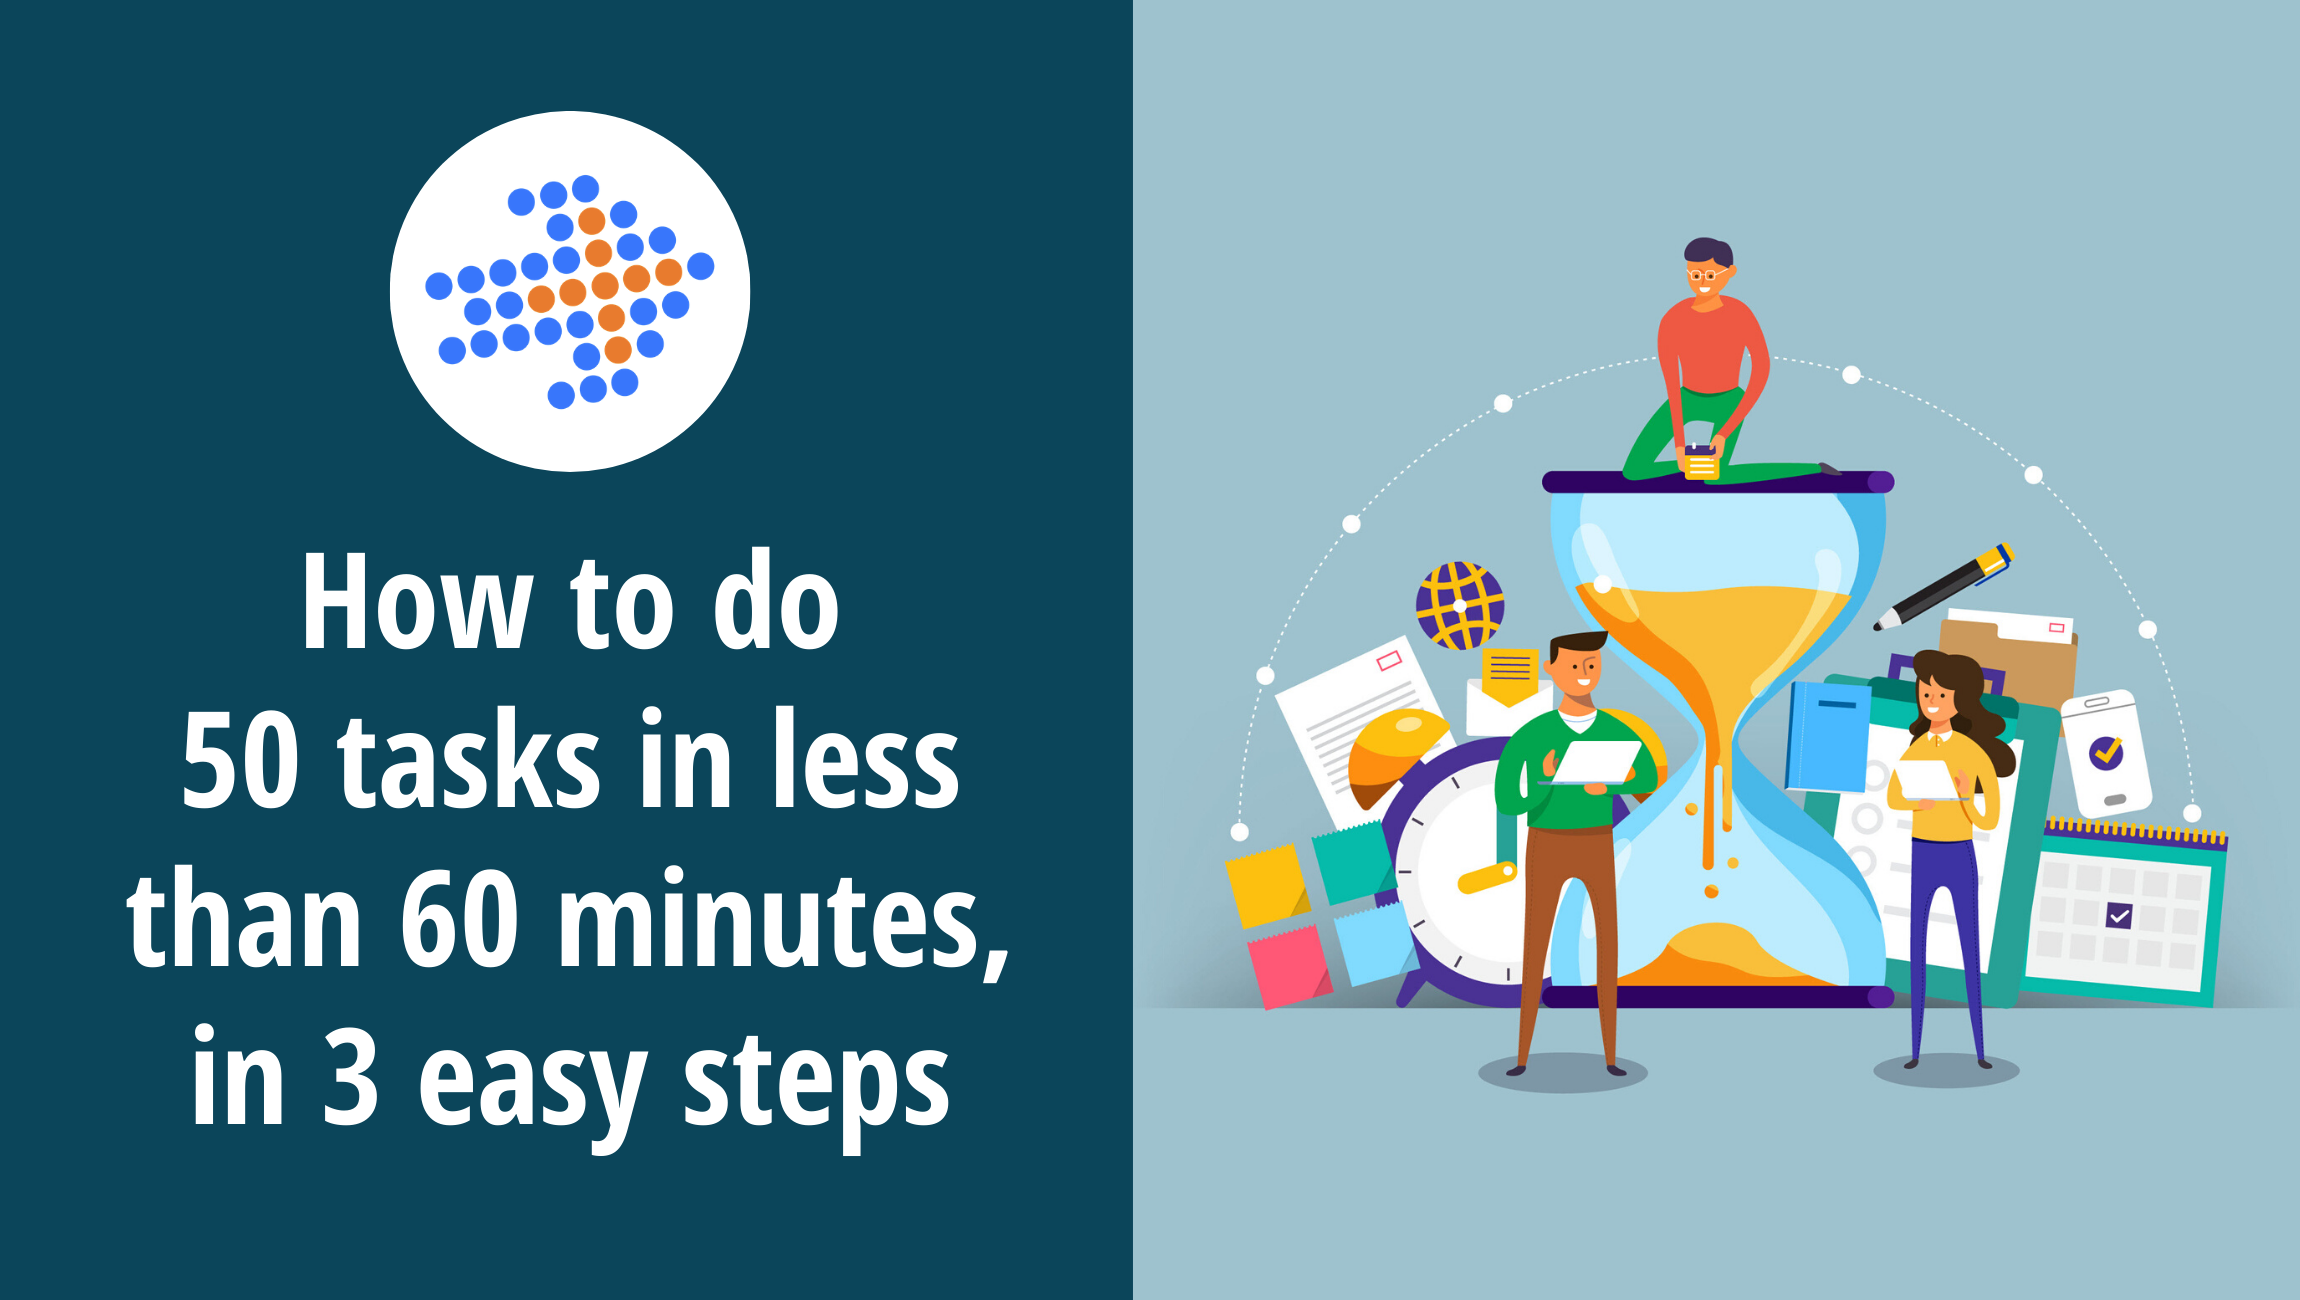 How to do 50 tasks in less than 60 minutes, in 3 easy steps